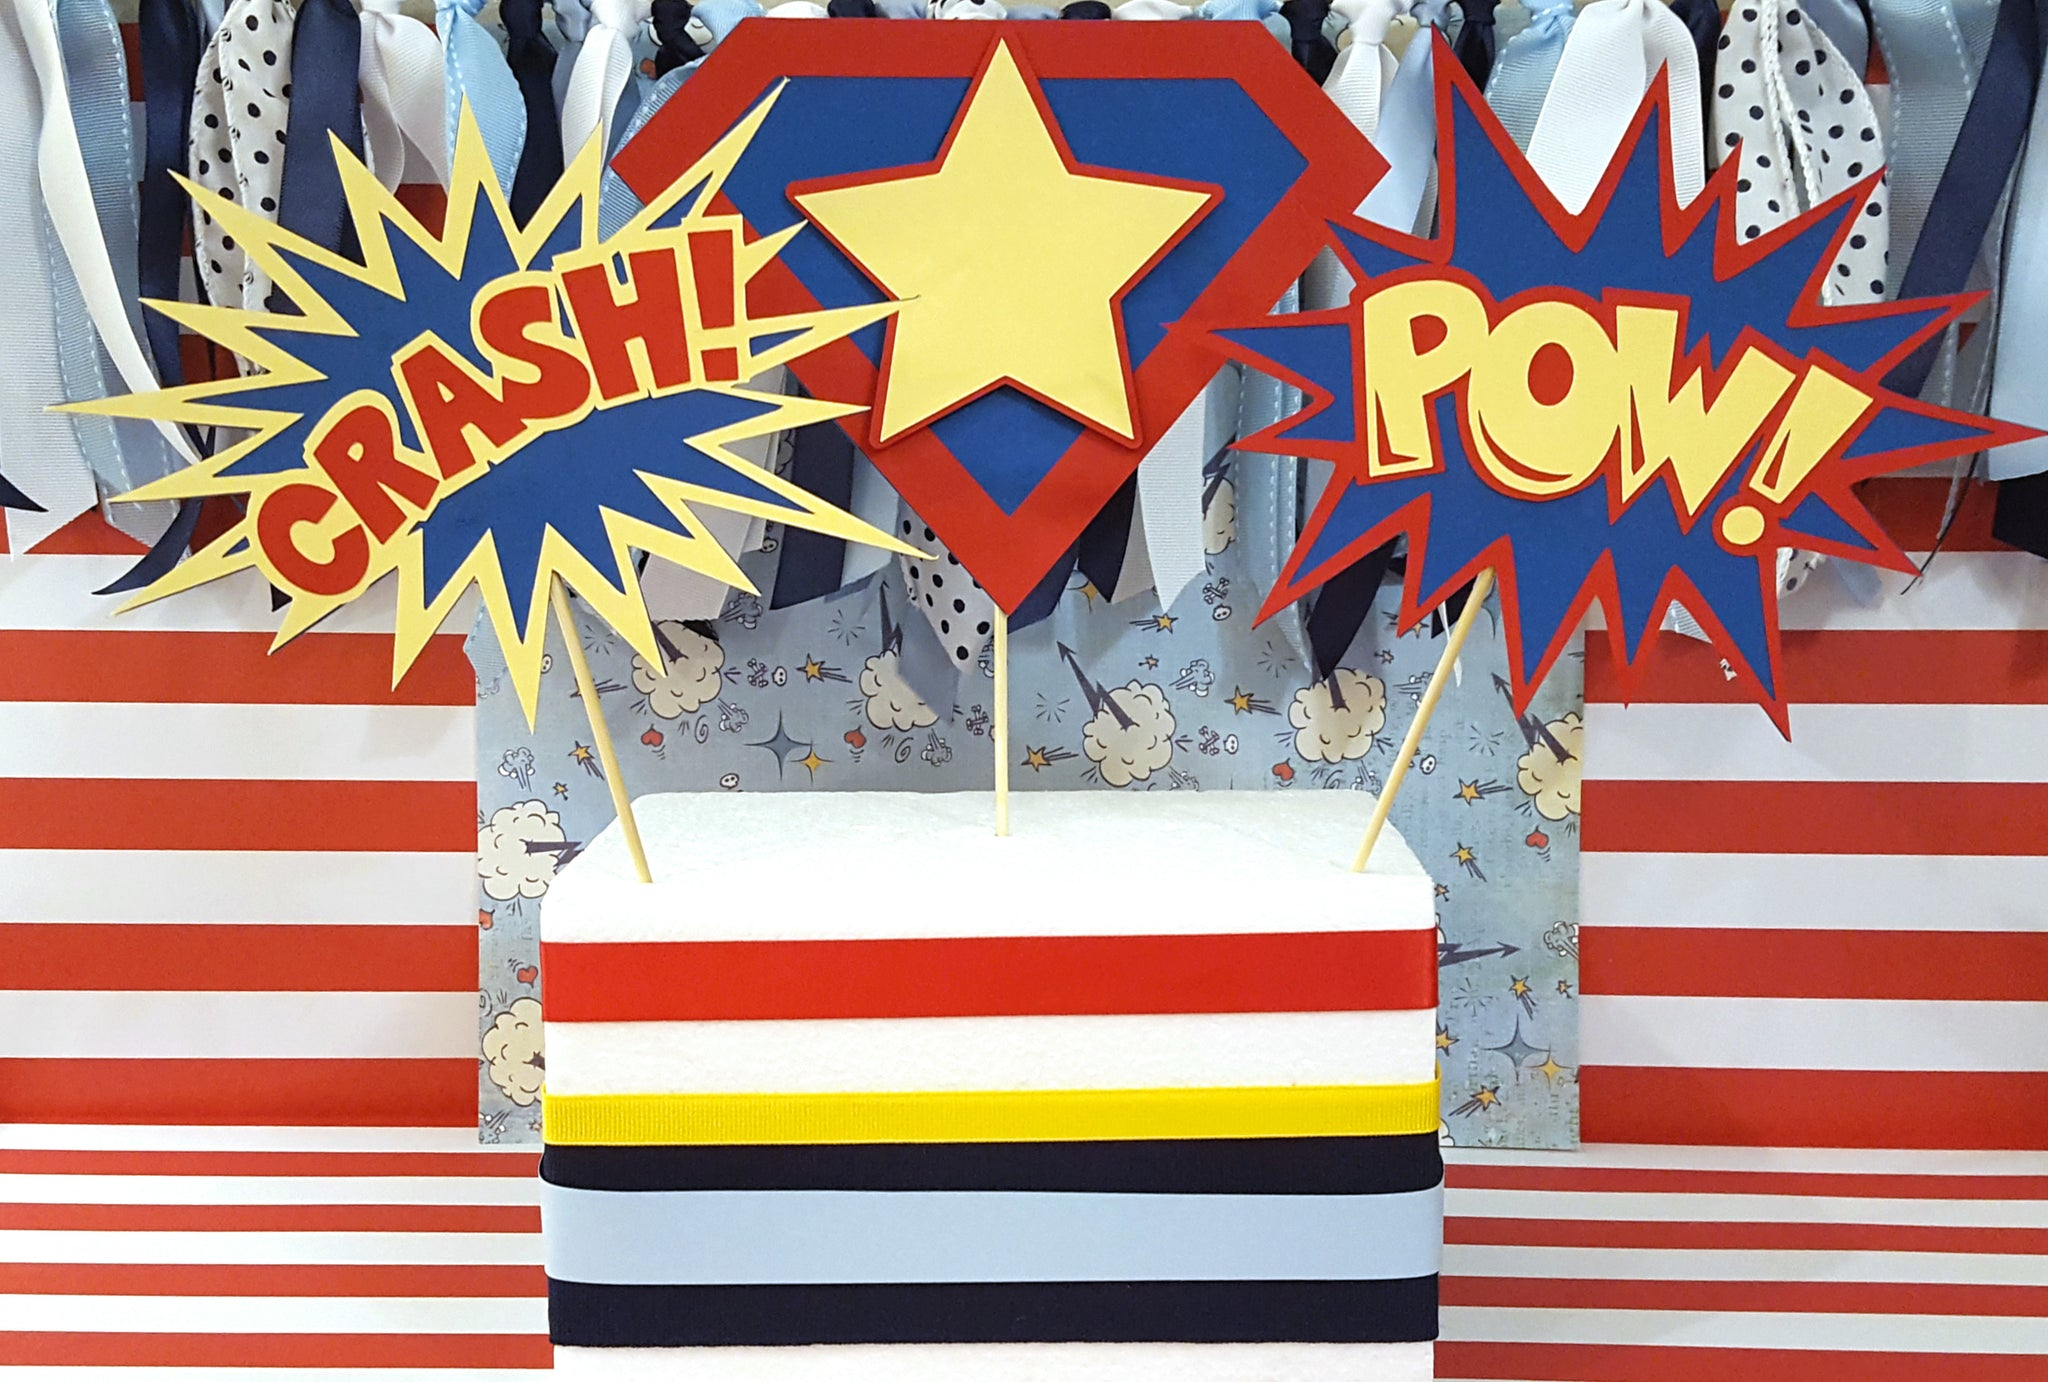 Crash, Pow, Superhero Centerpiece Set or Table Decor in Red, Yellow, and Blue for Birthday or Baby Shower